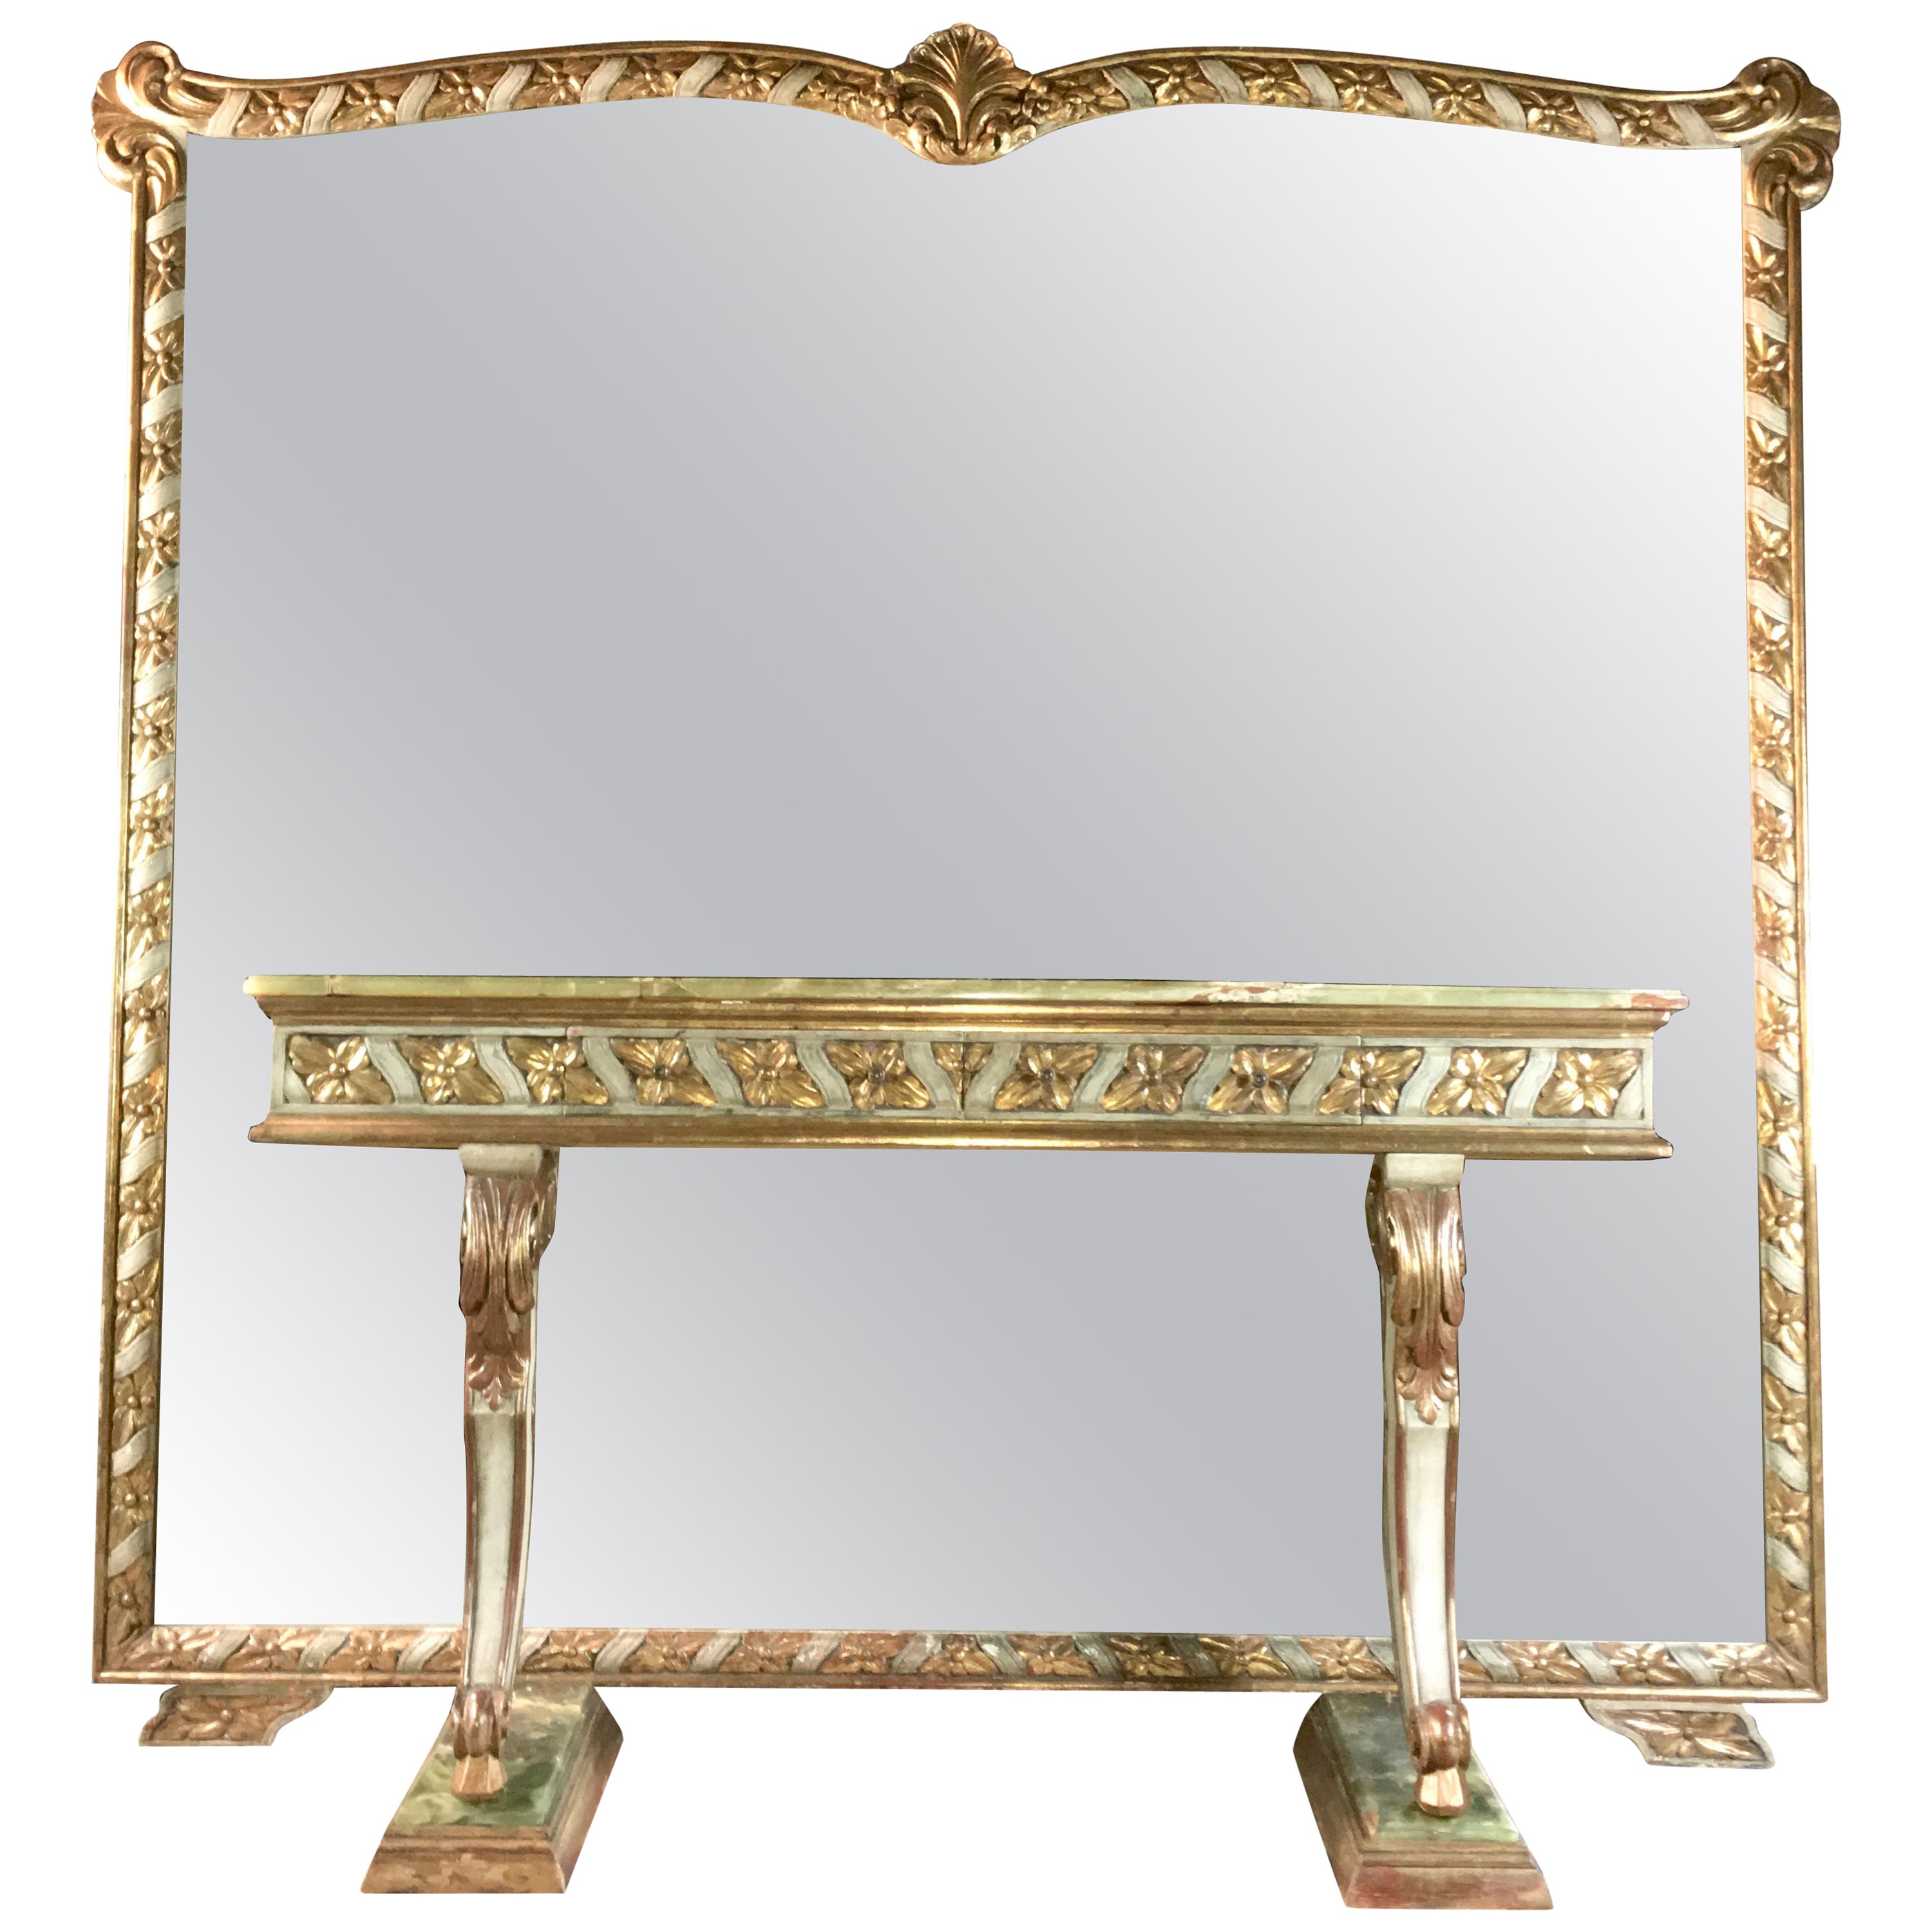 Wall Size Italian Hall Mirror with Onyx Console